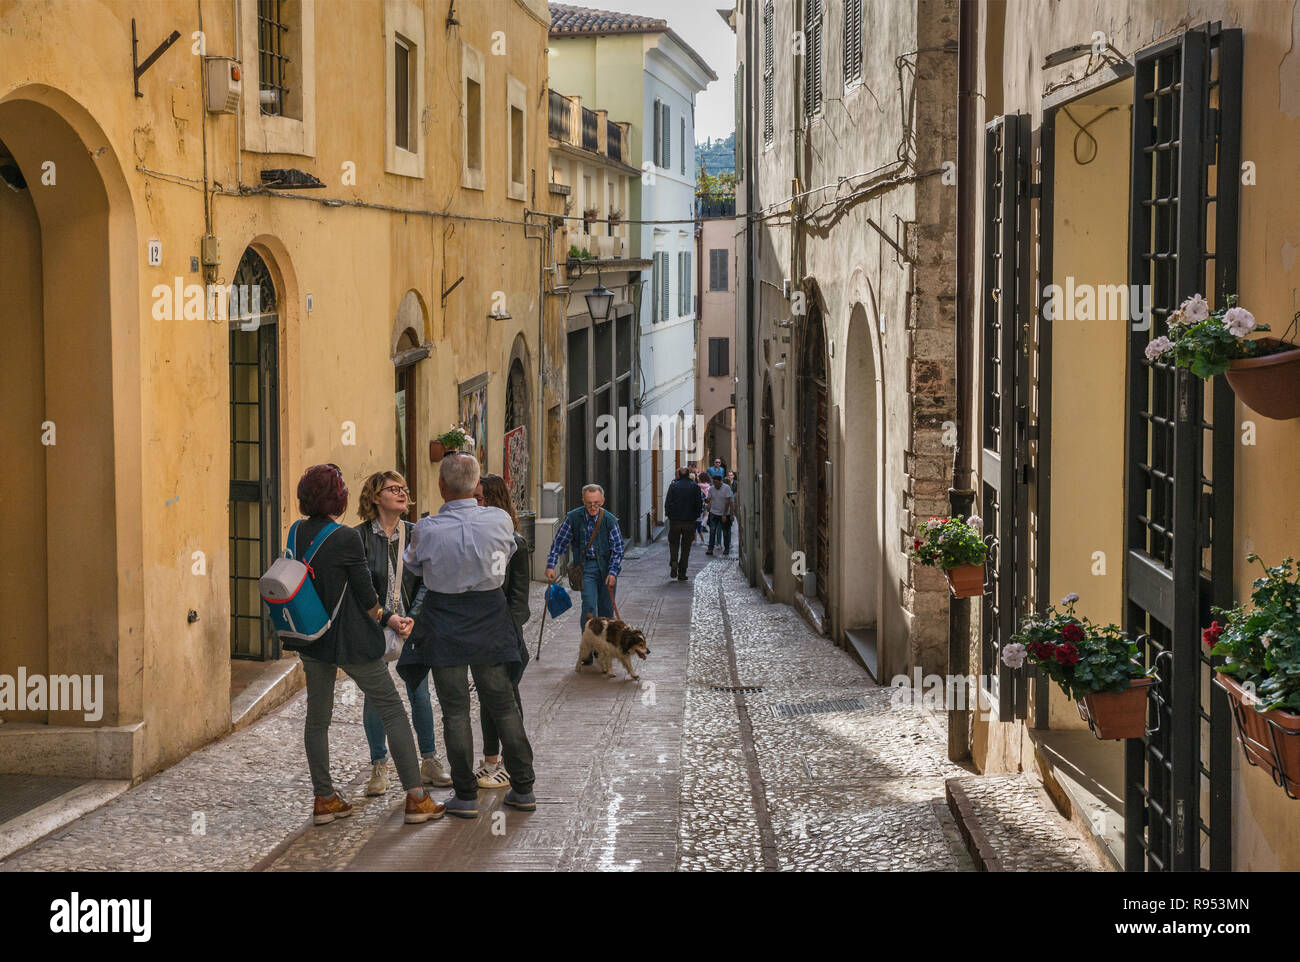 Tourists and local people at Via del Mercato, street in historic center of Spoleto, Umbria, Italy - Stock Image